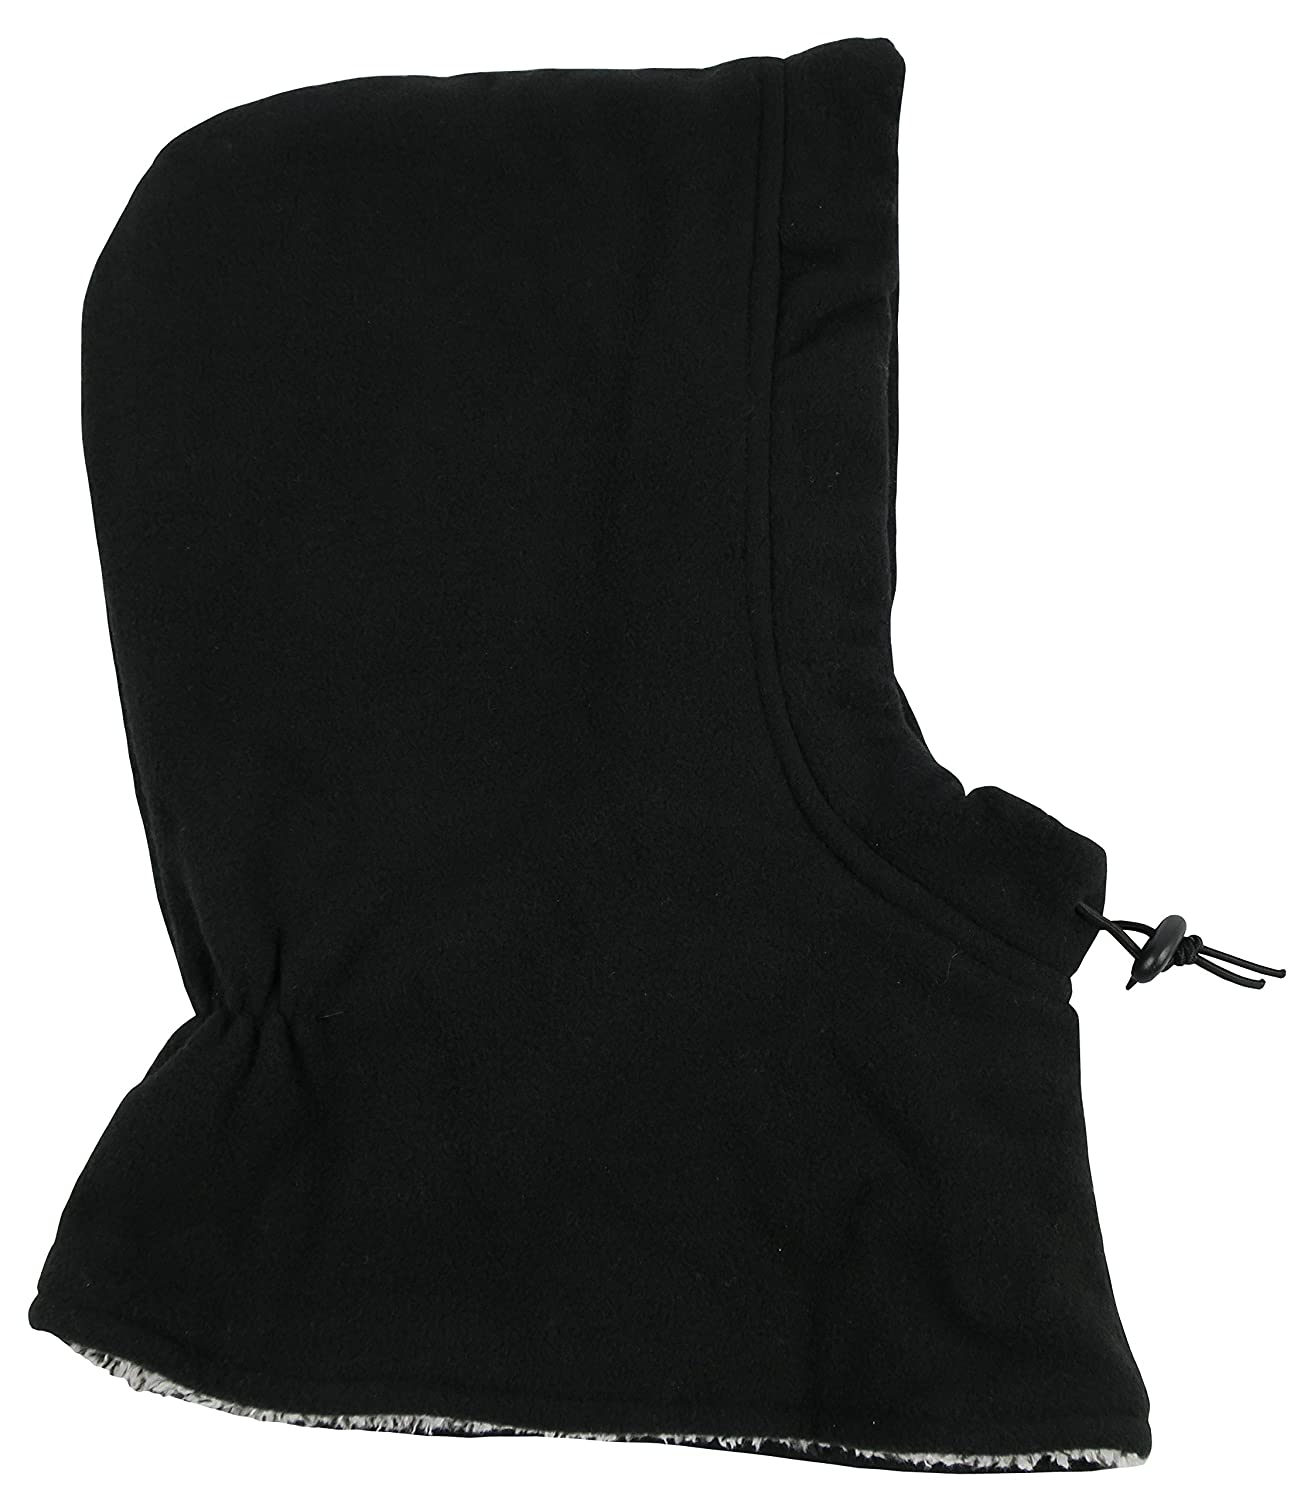 N'Ice Caps Kids Sherpa Lined Fleece Balaclava with Adjustable Draw Cord N'Ice Caps 611-BK-C